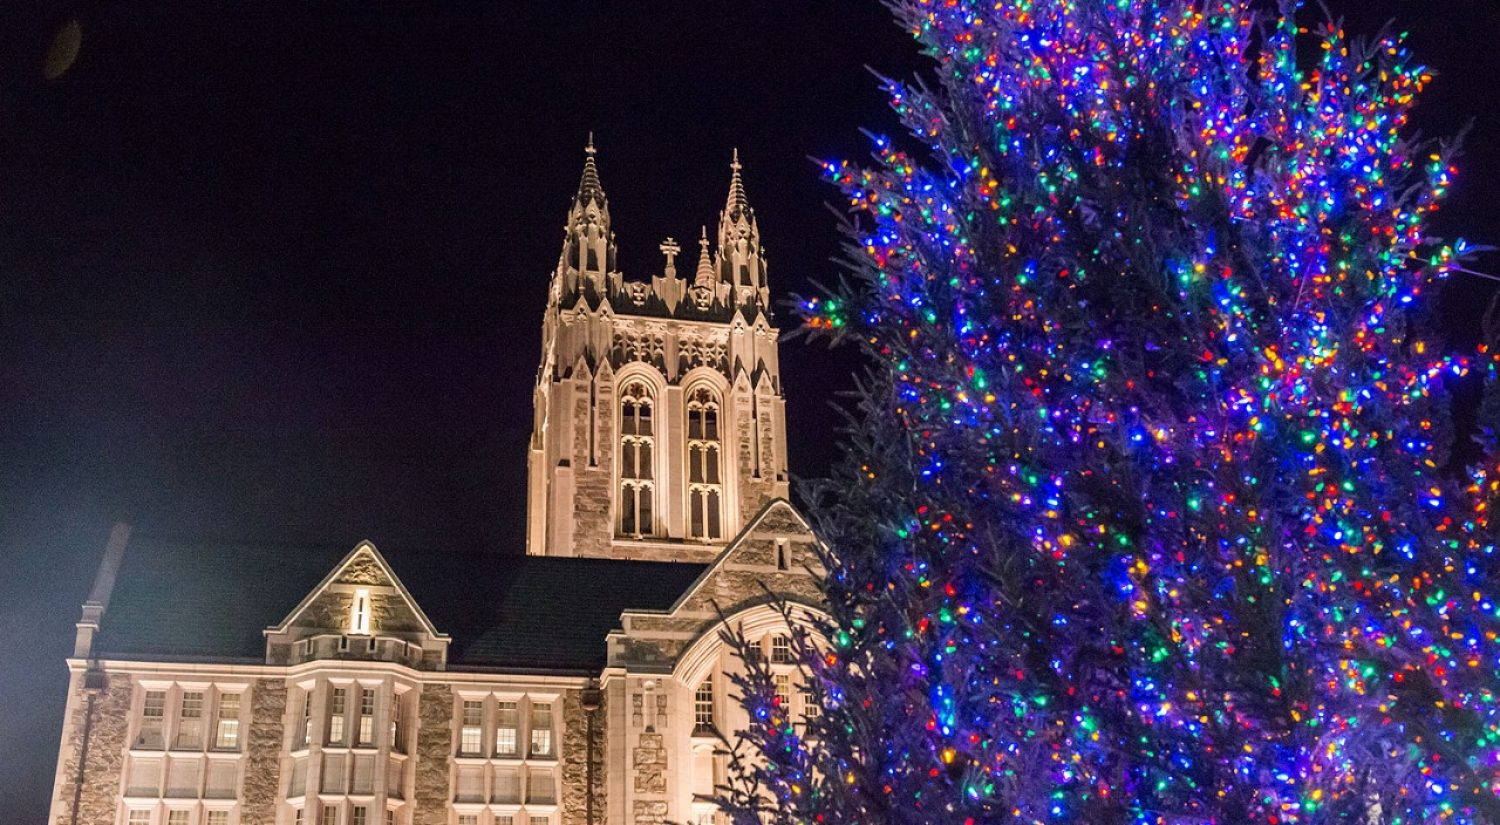 Gasson Hall at Christmas, Boston College